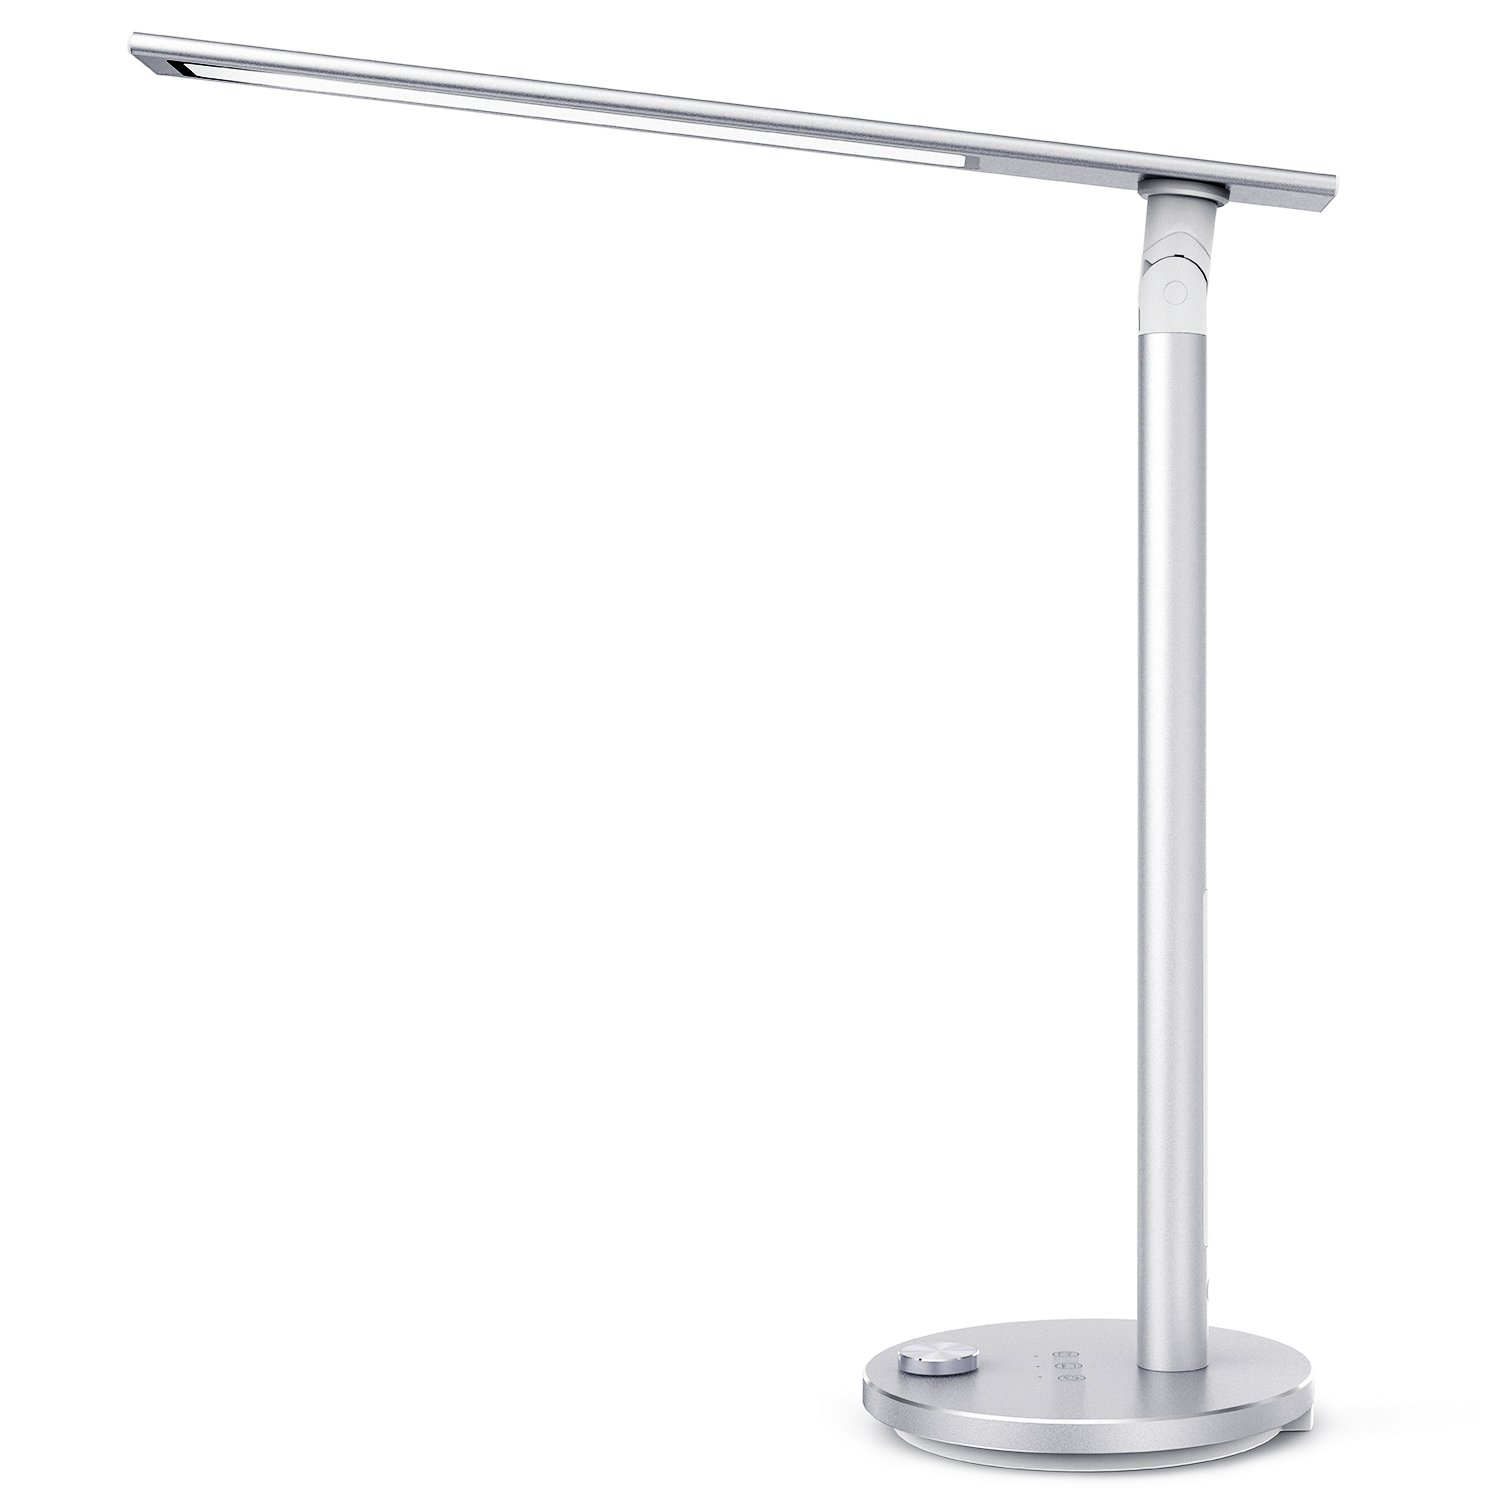 TaoTronics TT-DL037S Eye-caring LED Desk Lamp, Aluminum Alloy Table Lamp with 3 Color Modes, High CRI 92, Double-Light, Night Light, Philips EnabLED Licensing Program, Silver